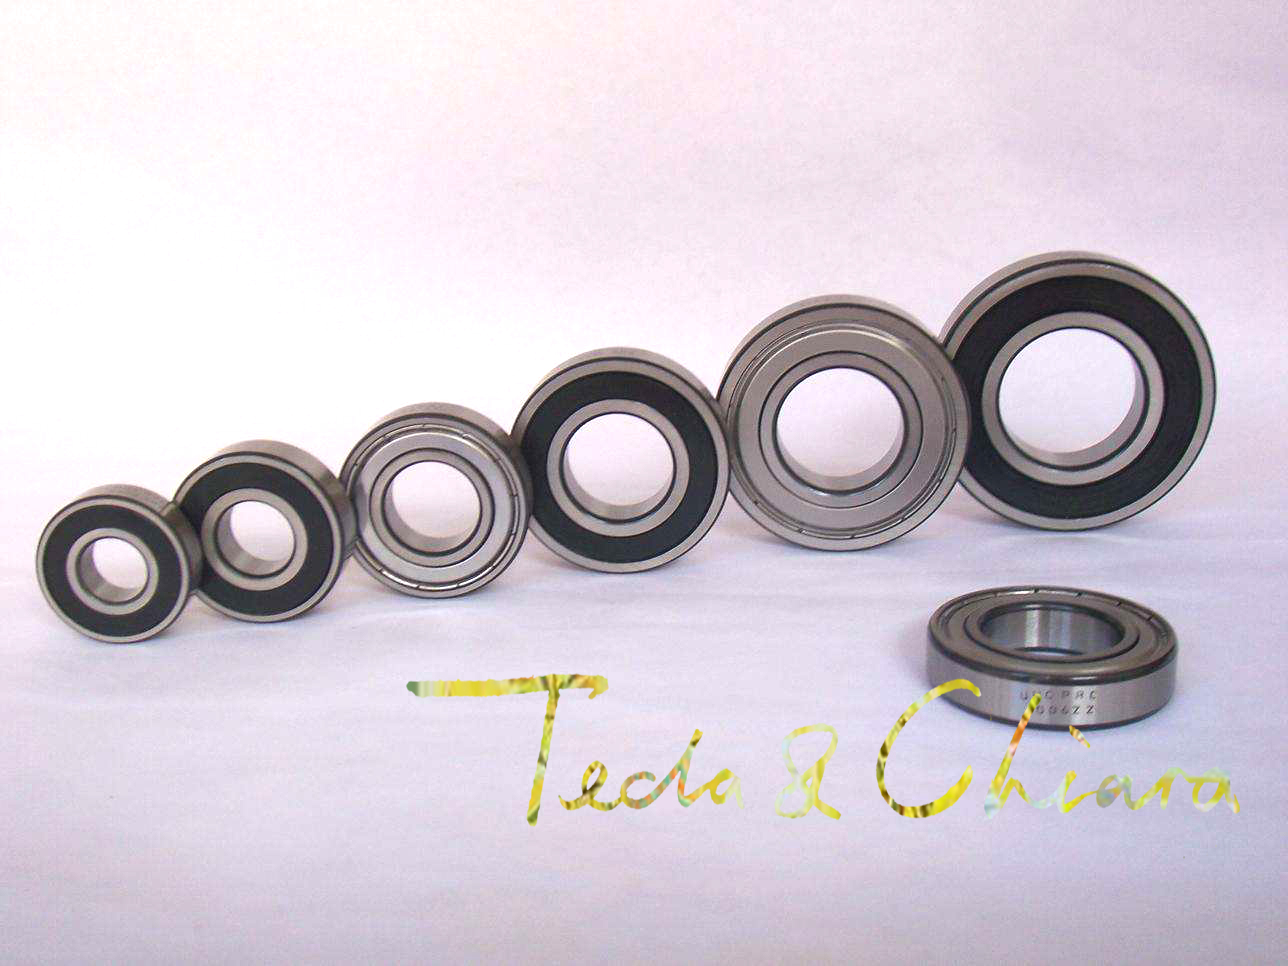 6004 6004ZZ 6004RS 6004-2Z 6004Z 6004-2RS ZZ RS RZ 2RZ Deep Groove Ball Bearings 20 x 42 x 12mm High Quality free shipping 25x47x12mm deep groove ball bearings 6005 zz 2z 6005zz bearing 6005zz 6005 2rs